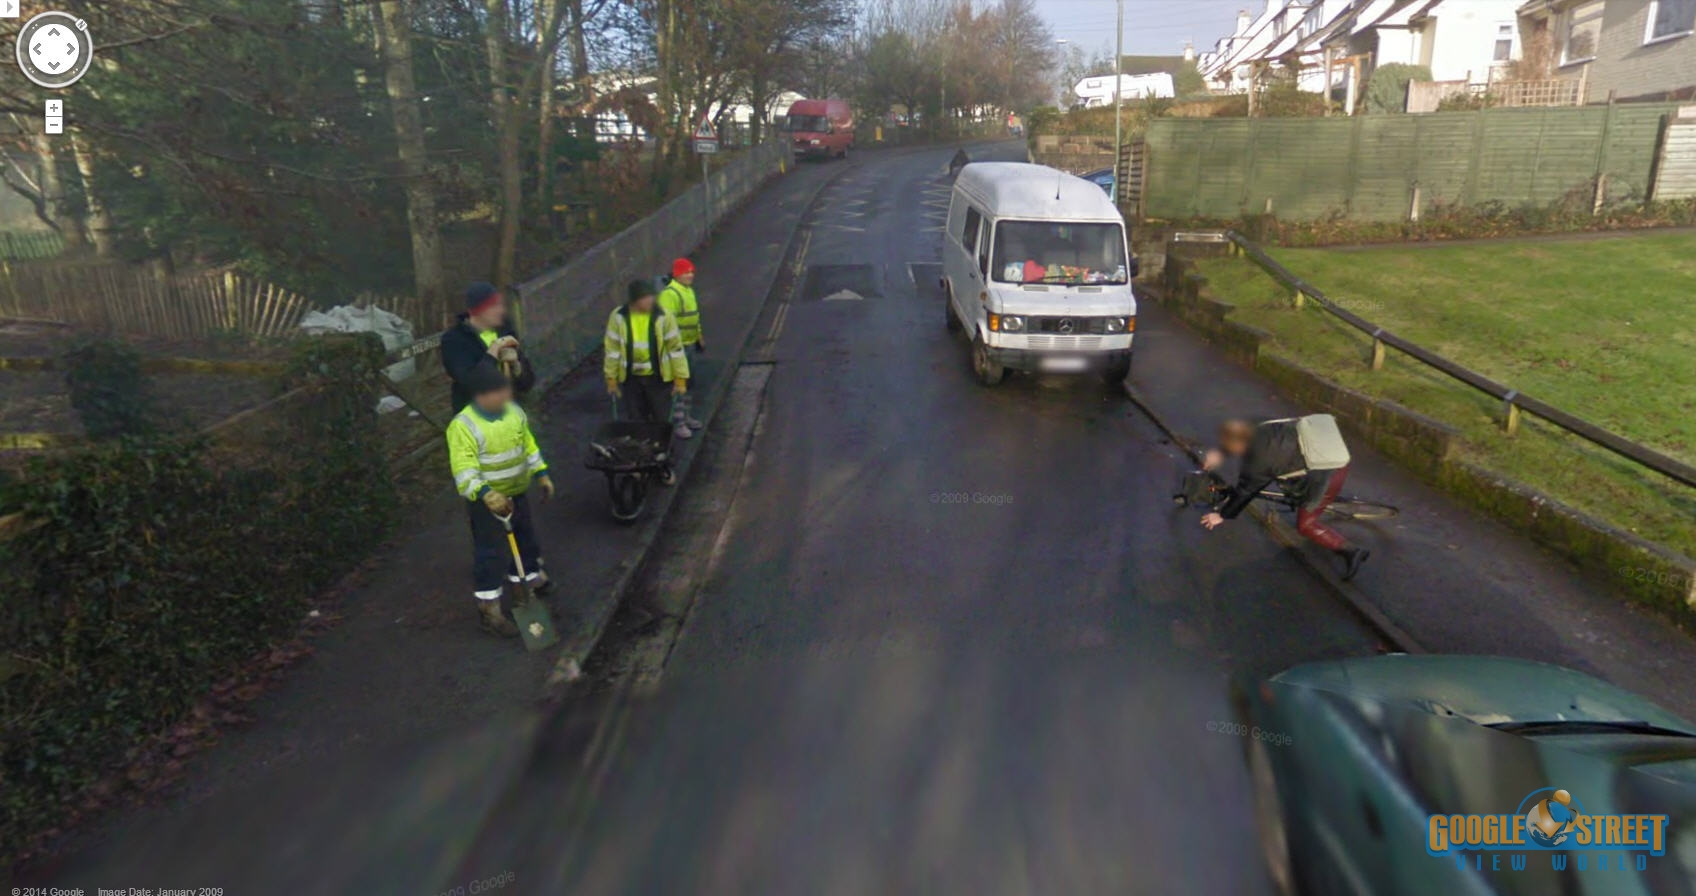 Priceless – Falling off Your Bike in Front of People and Google Street View!